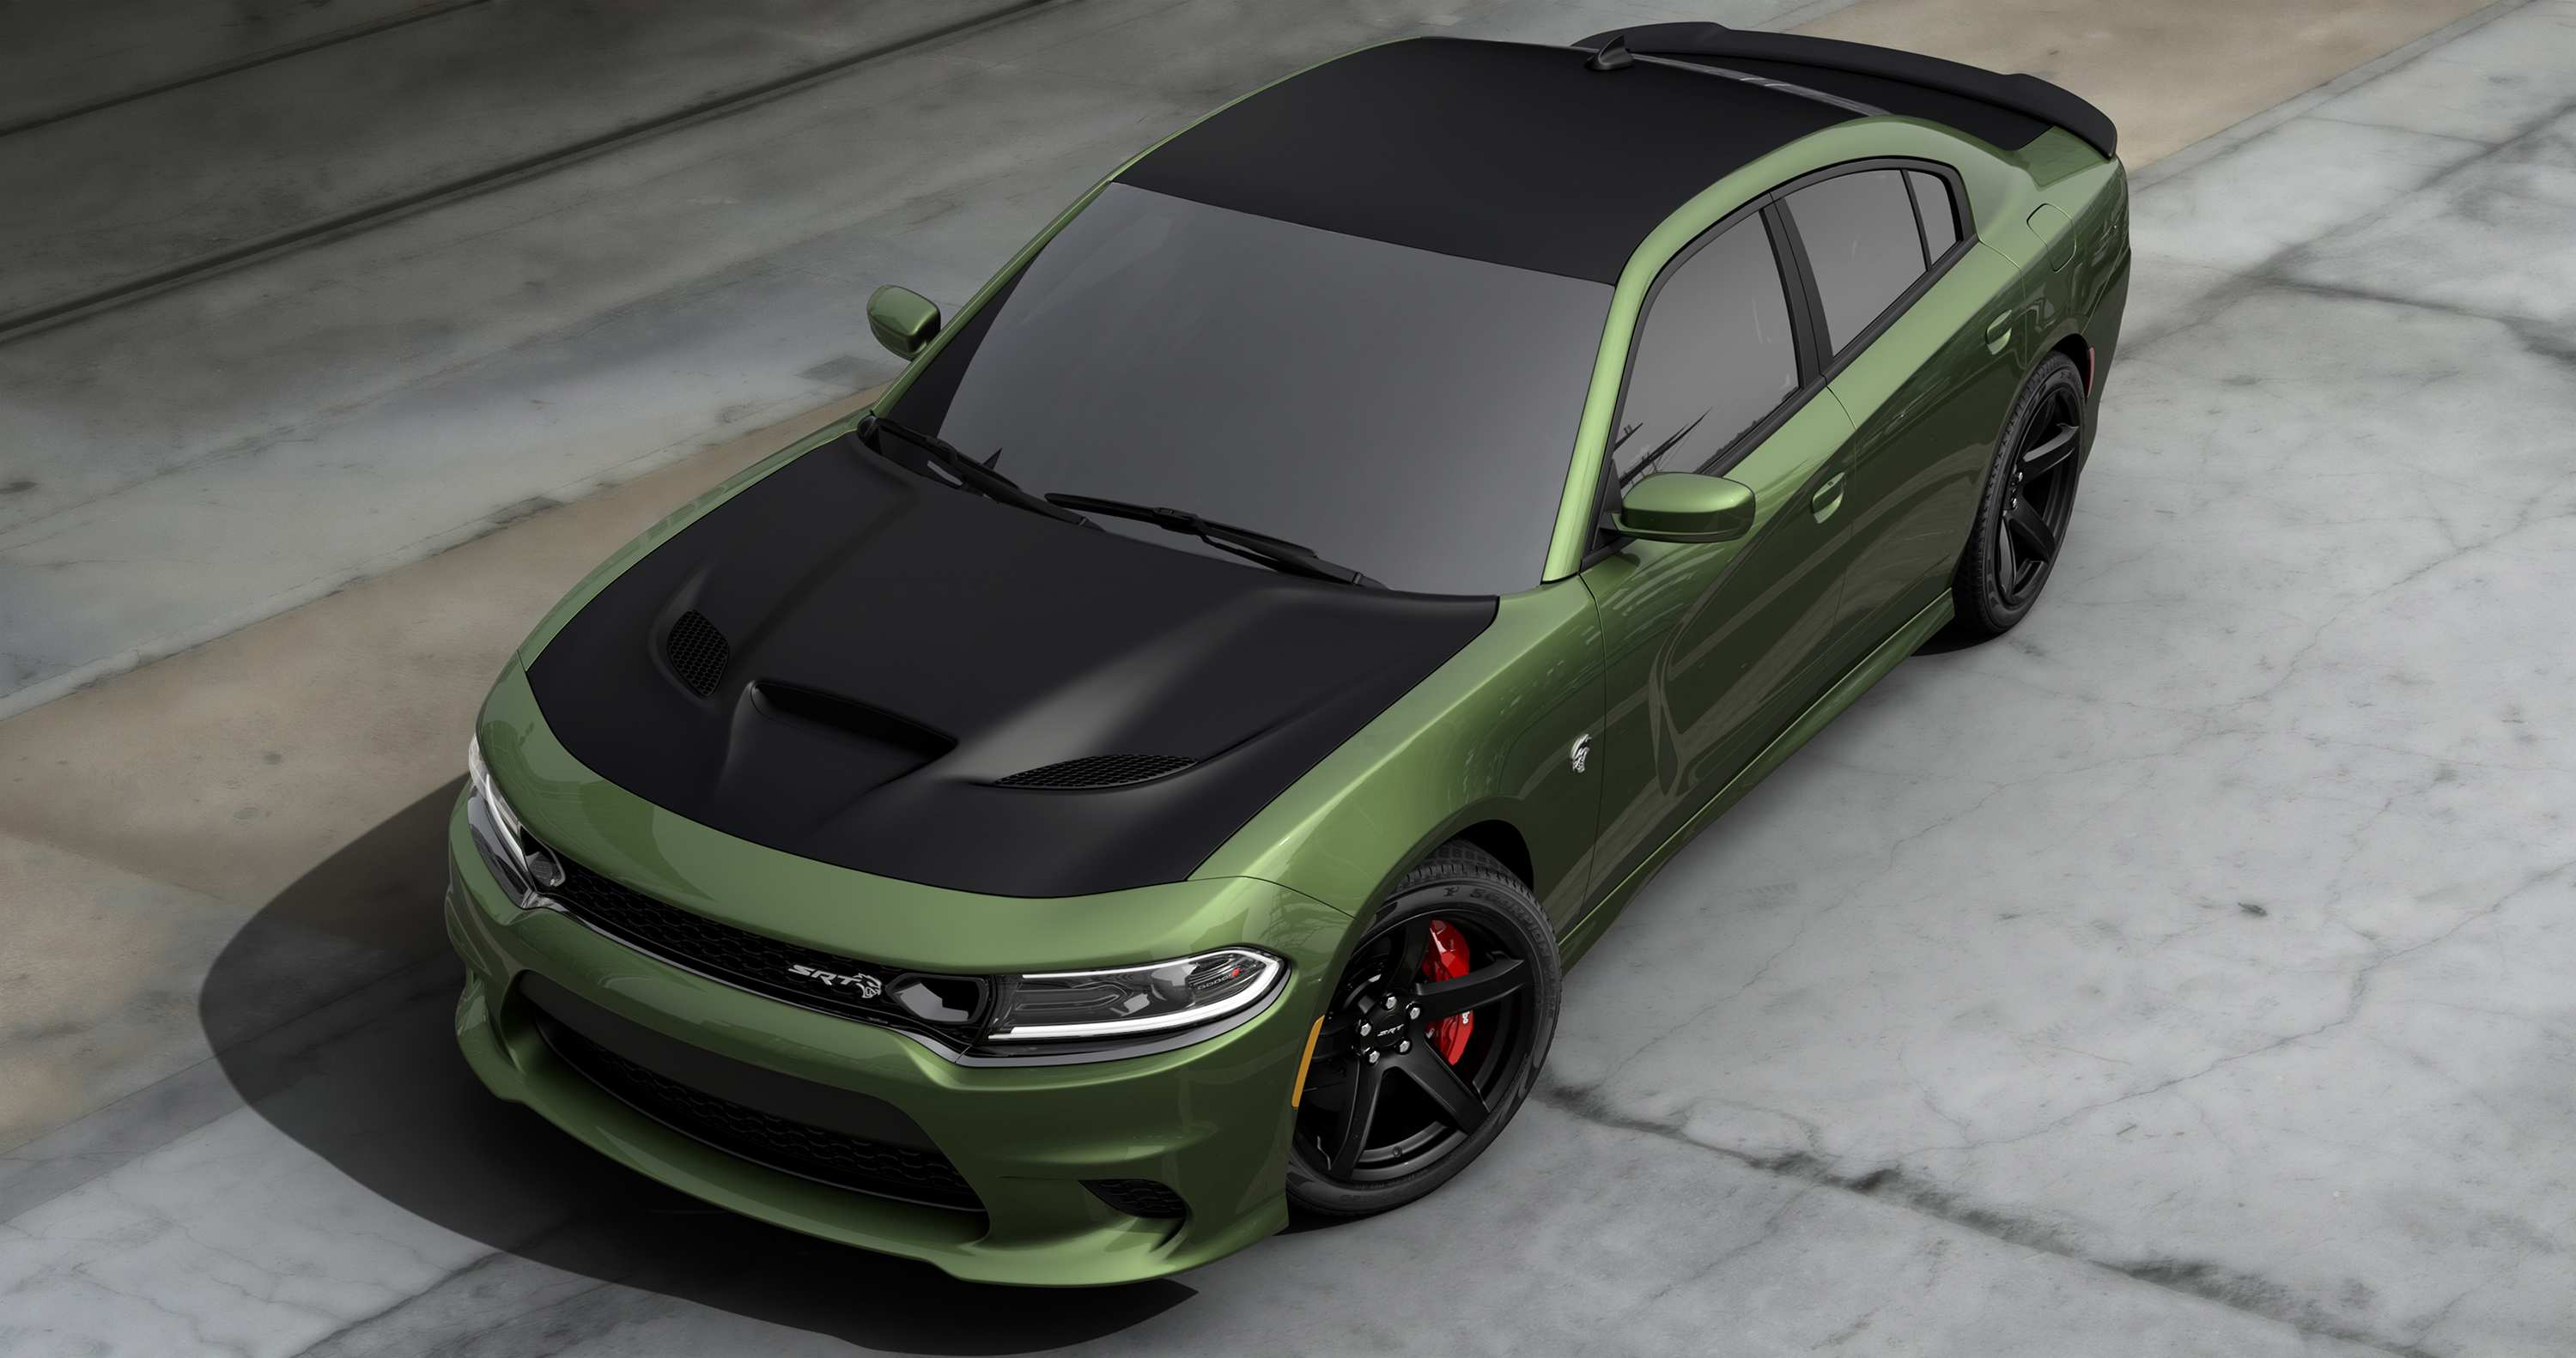 56 The Best Dodge Vision 2020 Style